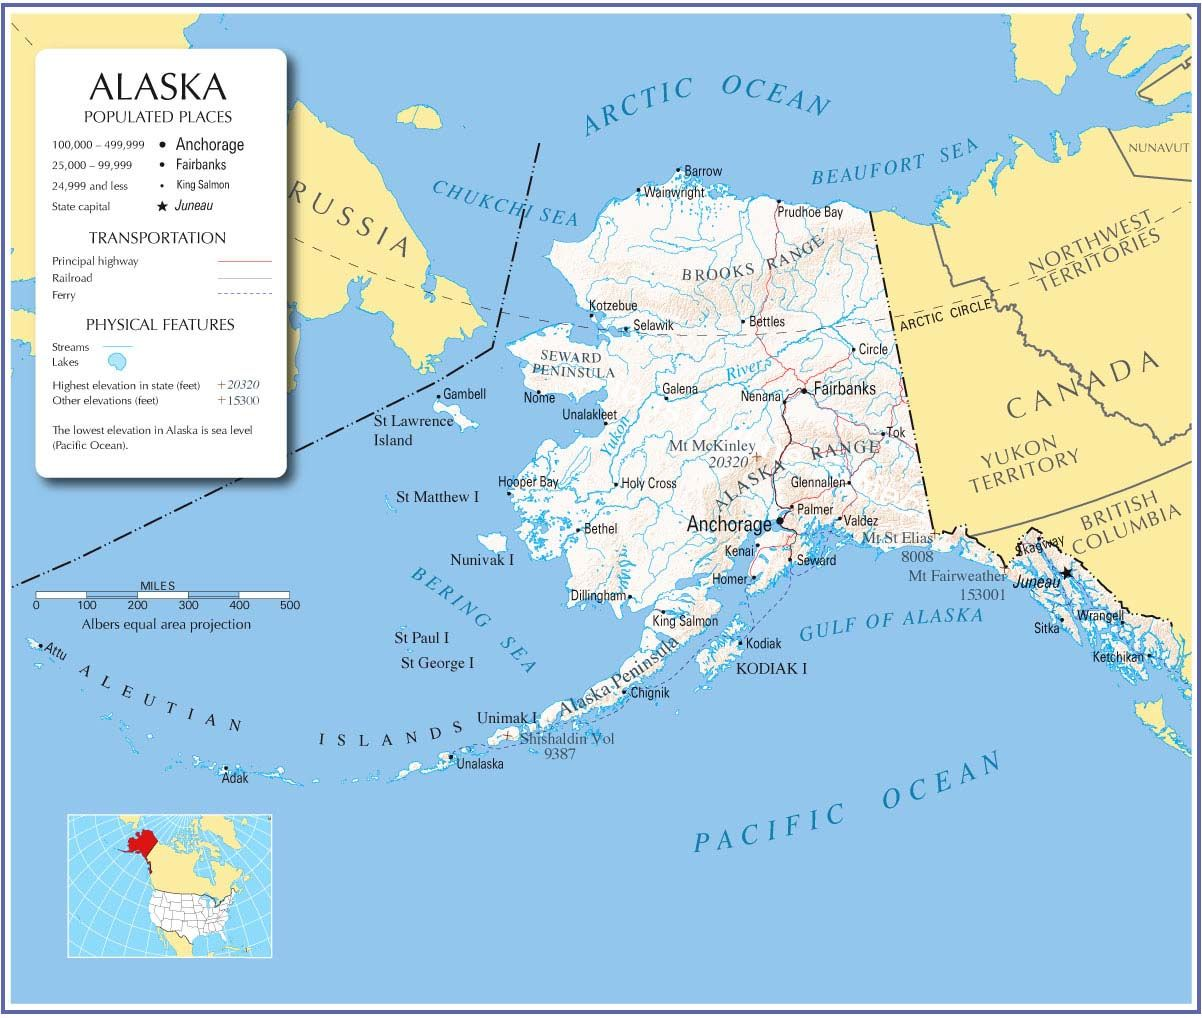 Alaska Map Alaska Trip Pinterest Alaska Usa road map and